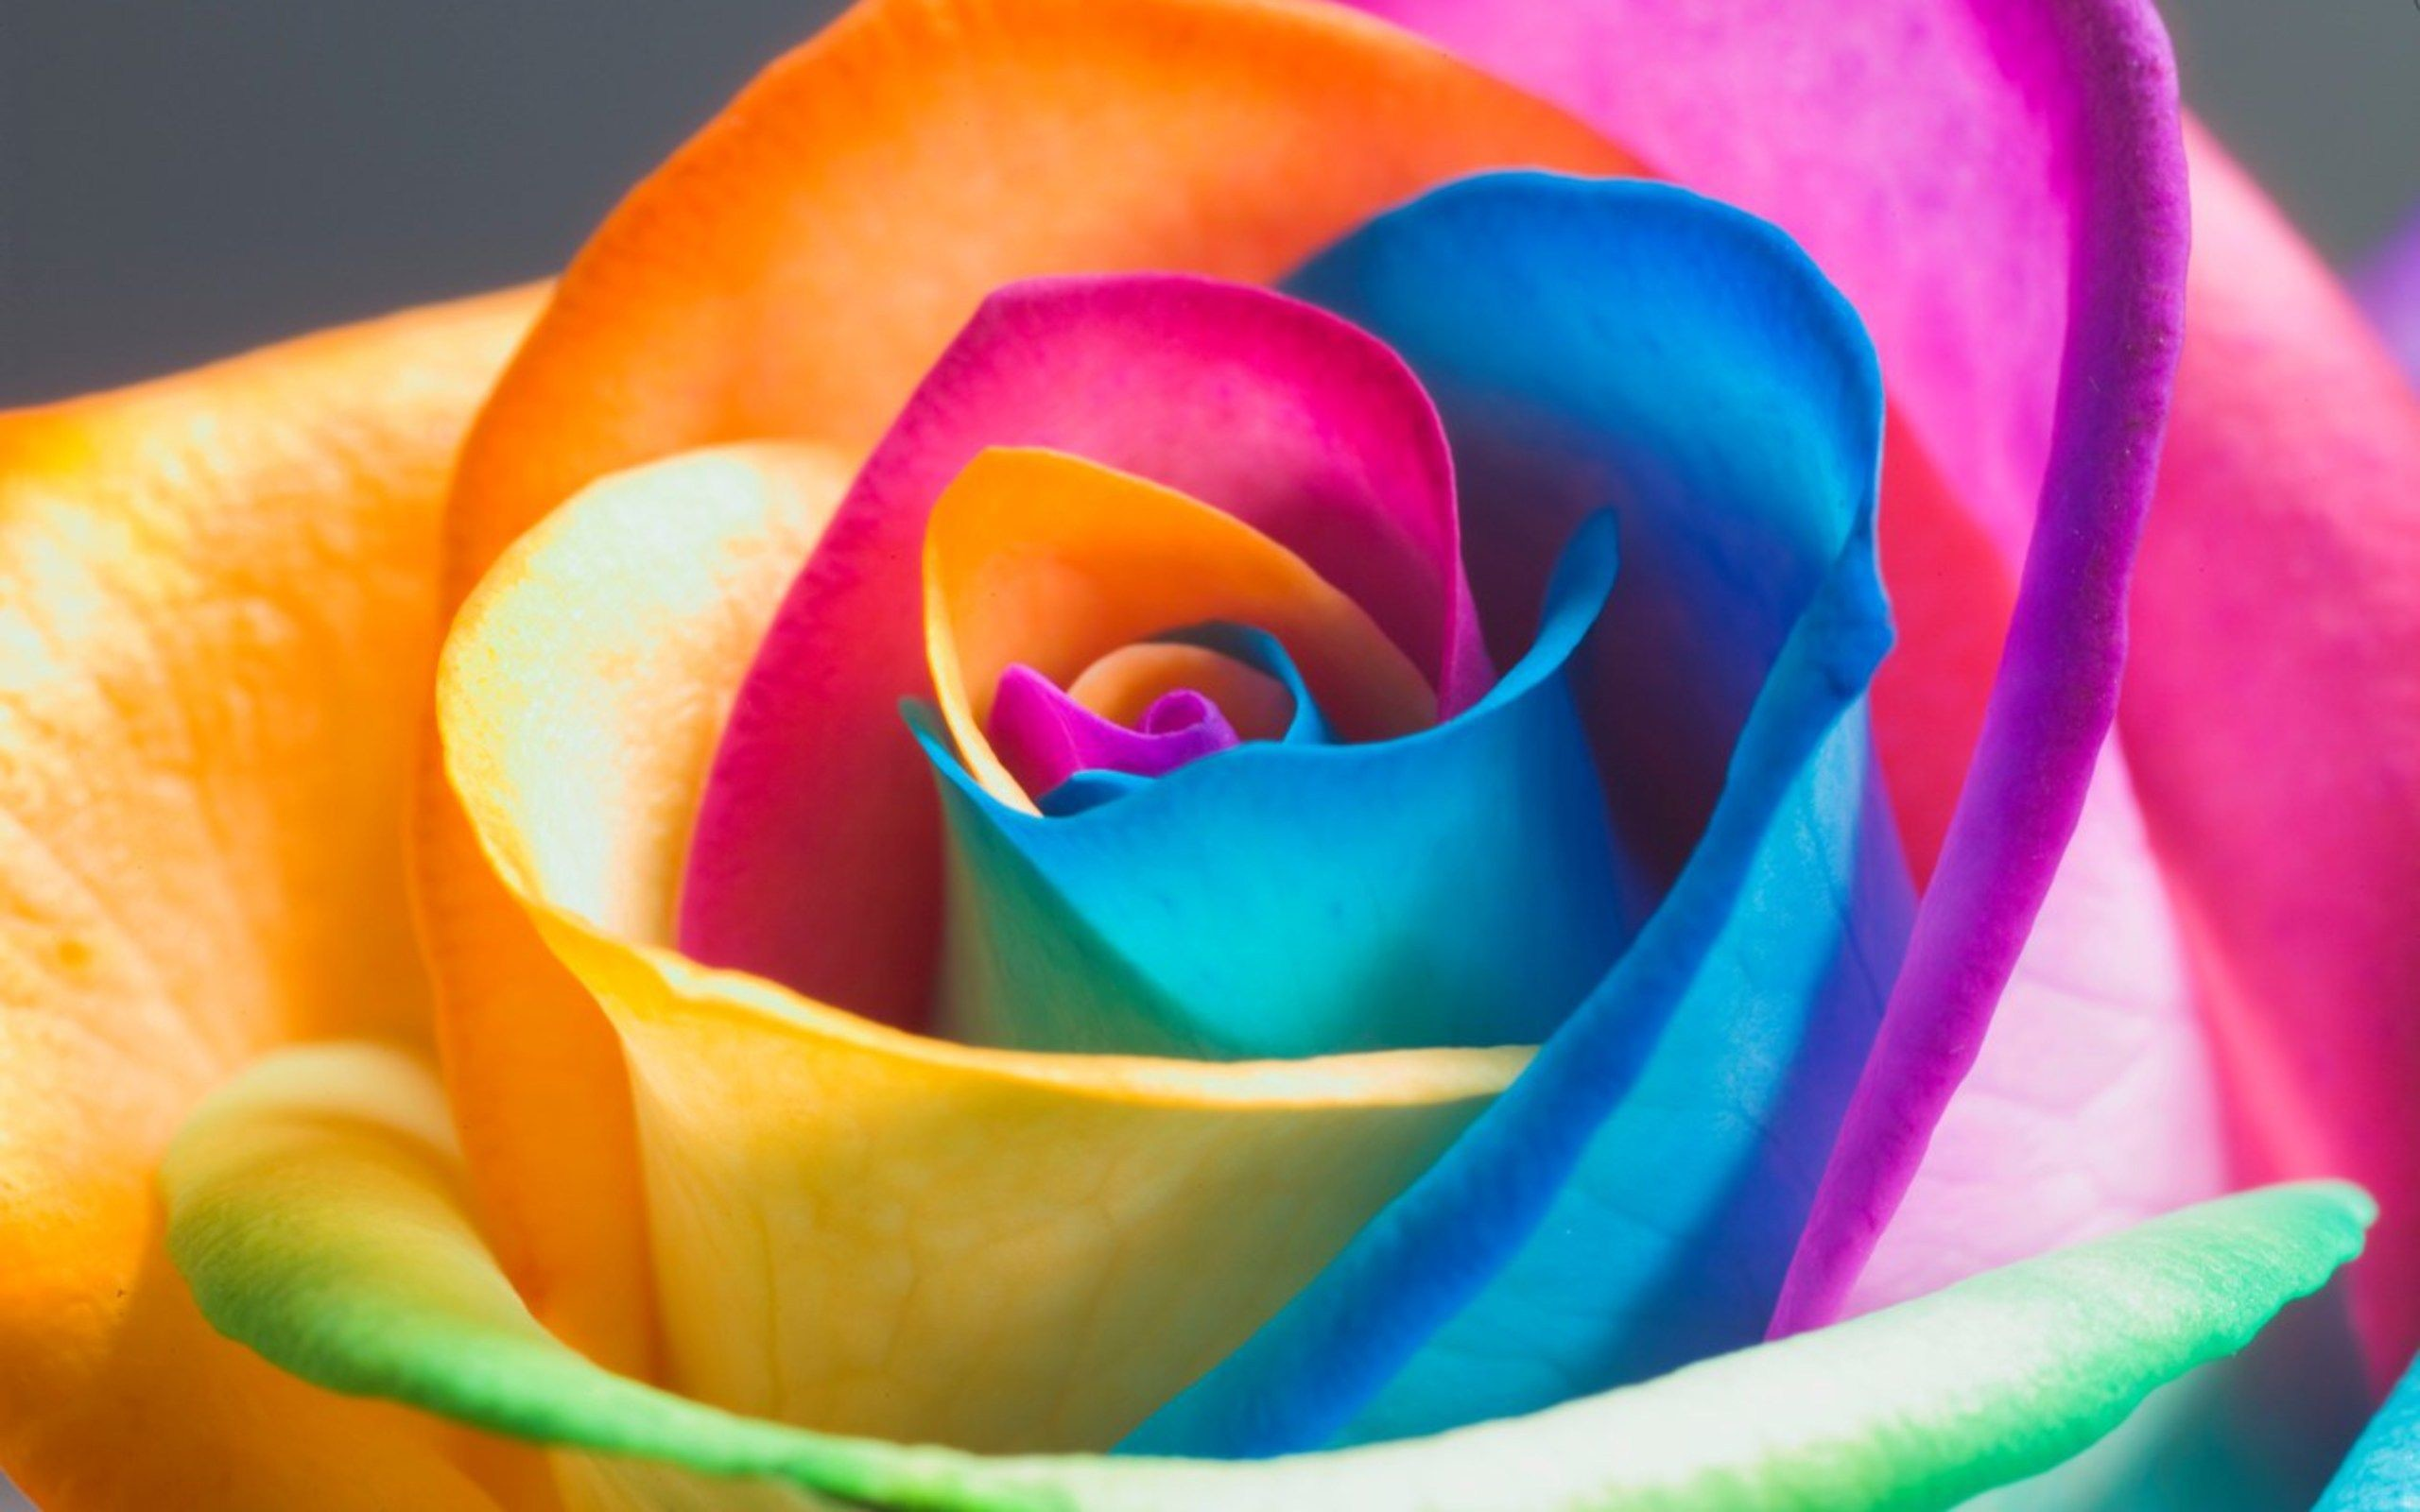 Res: 2560x1600, Colorful Rose Wallpapers HD : Find best latest Colorful Rose Wallpapers HD  for your PC desktop background and mobile phones.